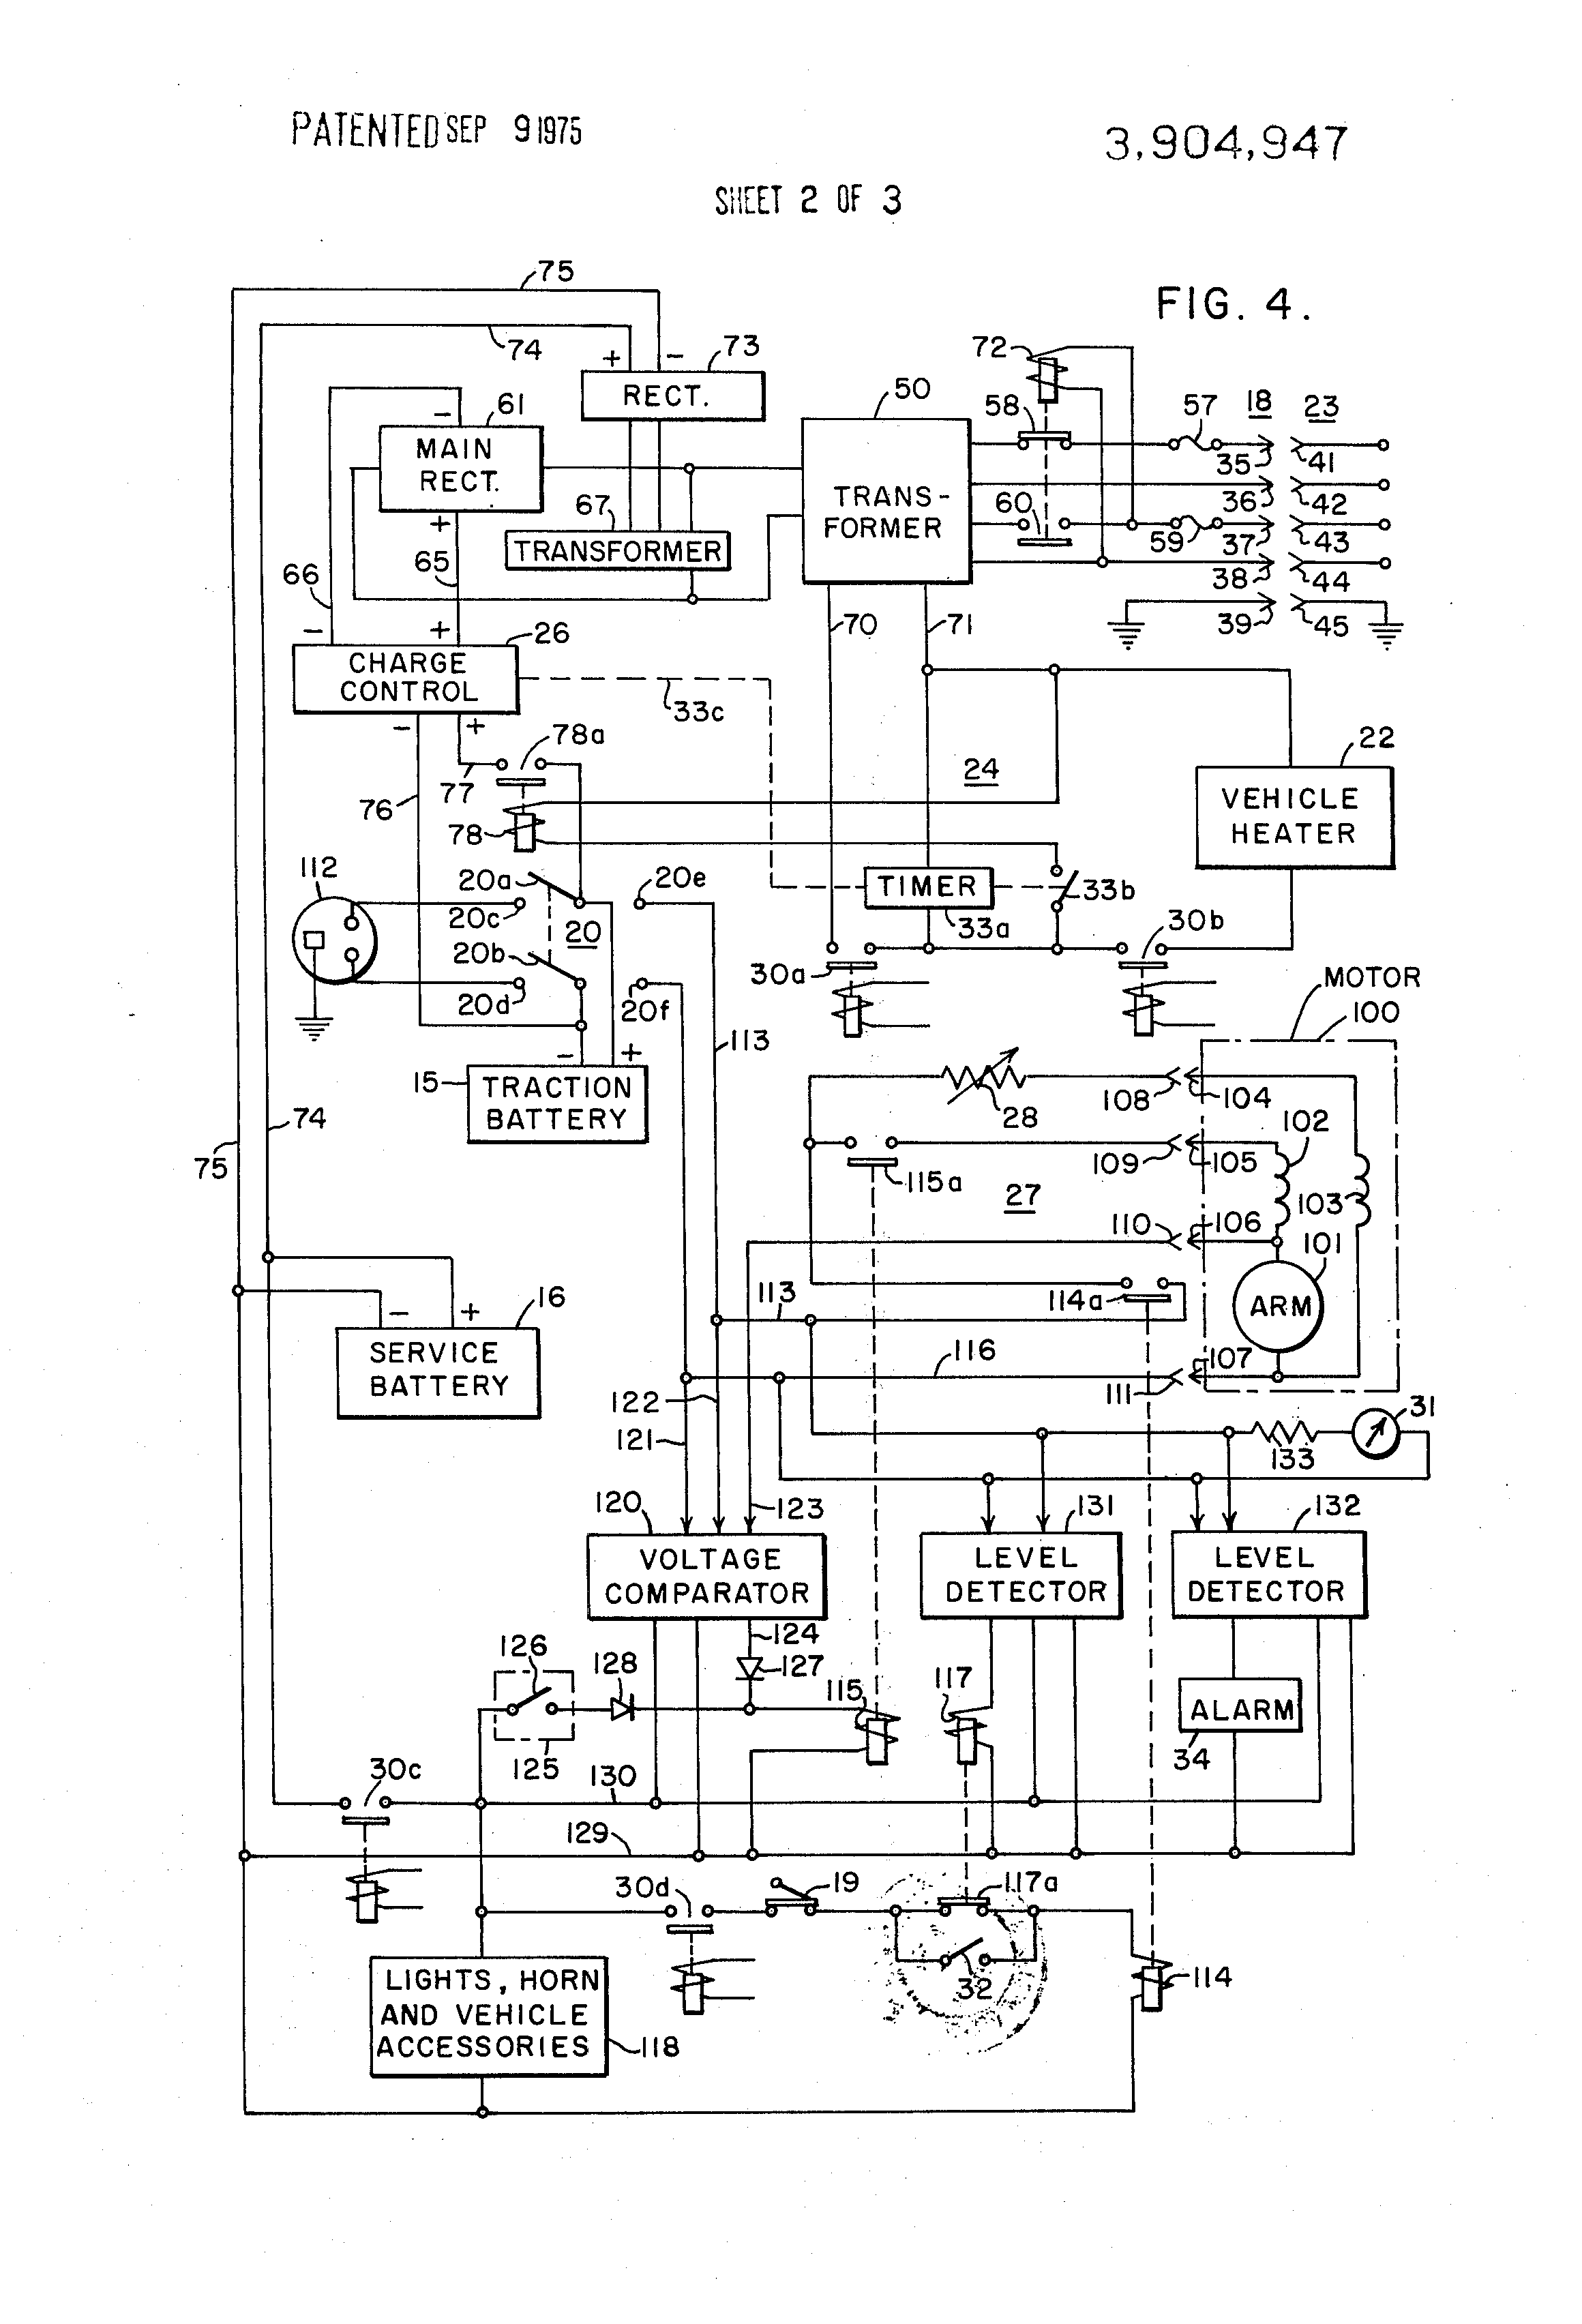 US3904947 2 patent us3904947 vehicle mounted battery charging system for an lester 36 volt battery charger wiring diagram at panicattacktreatment.co